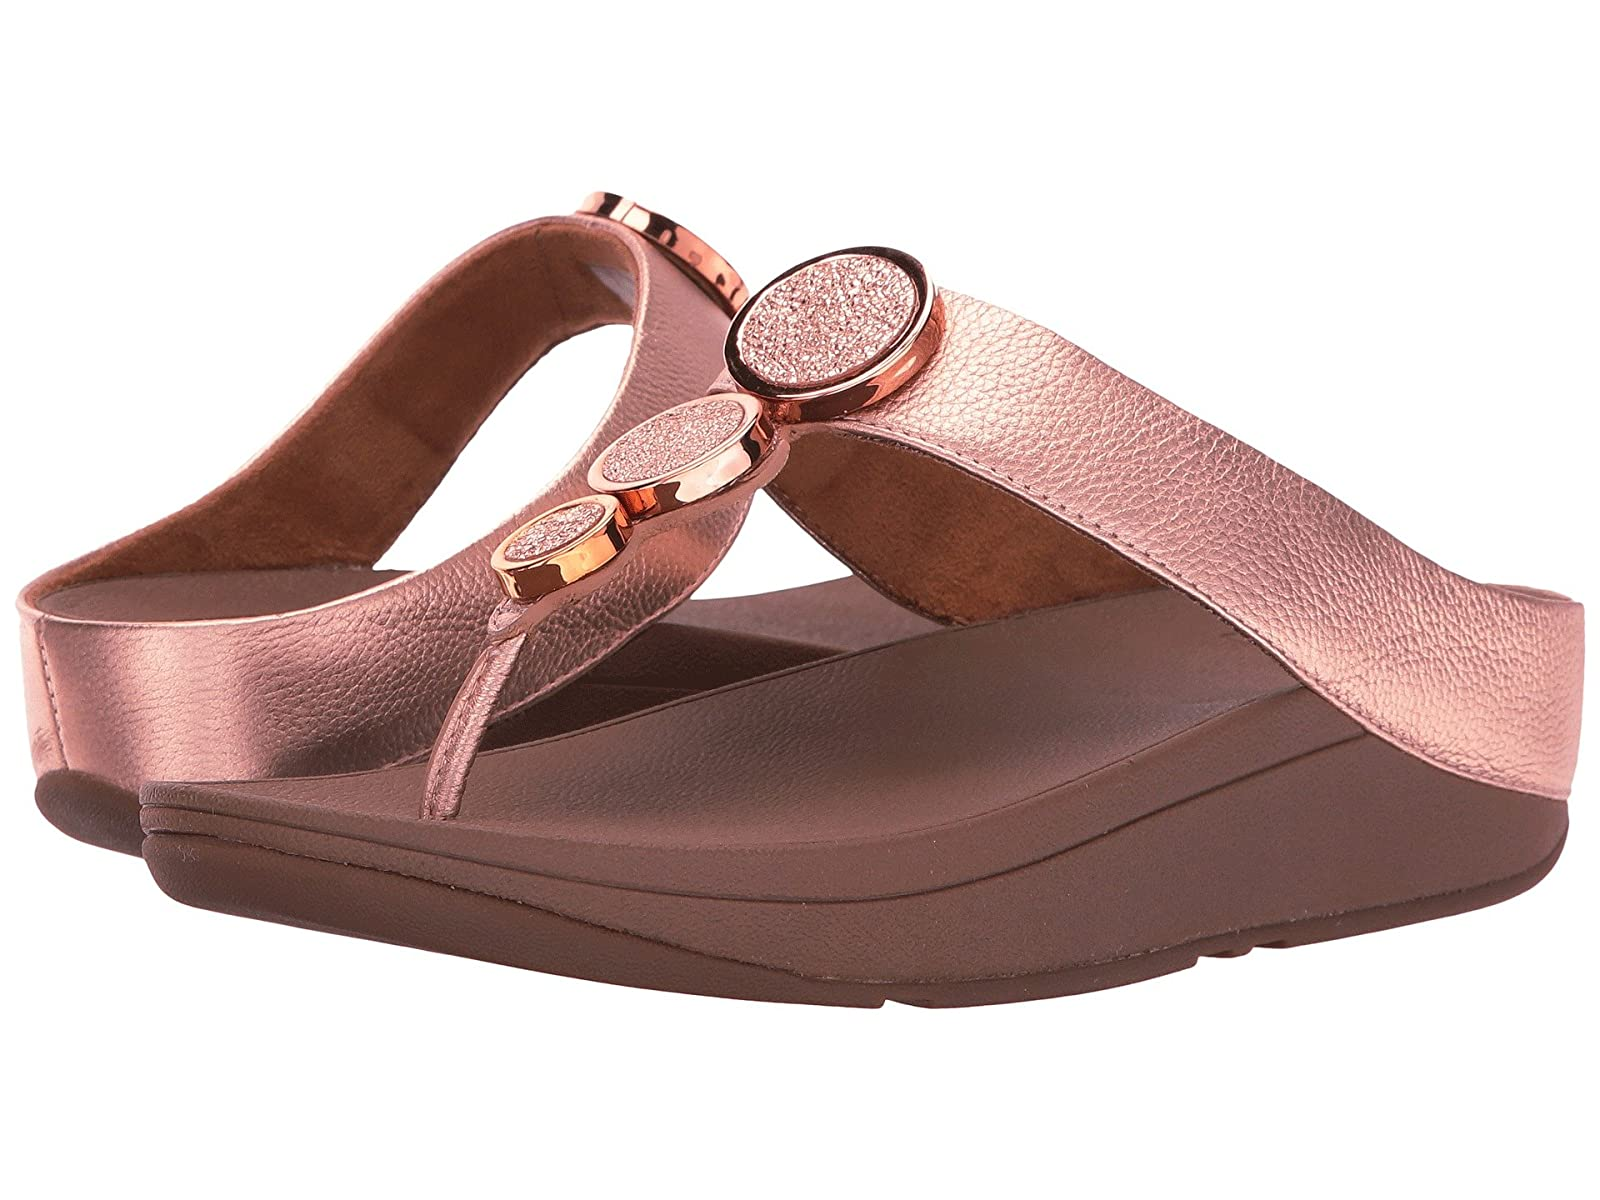 FitFlop Halo Toe Thong SandalsAtmospheric grades have affordable shoes